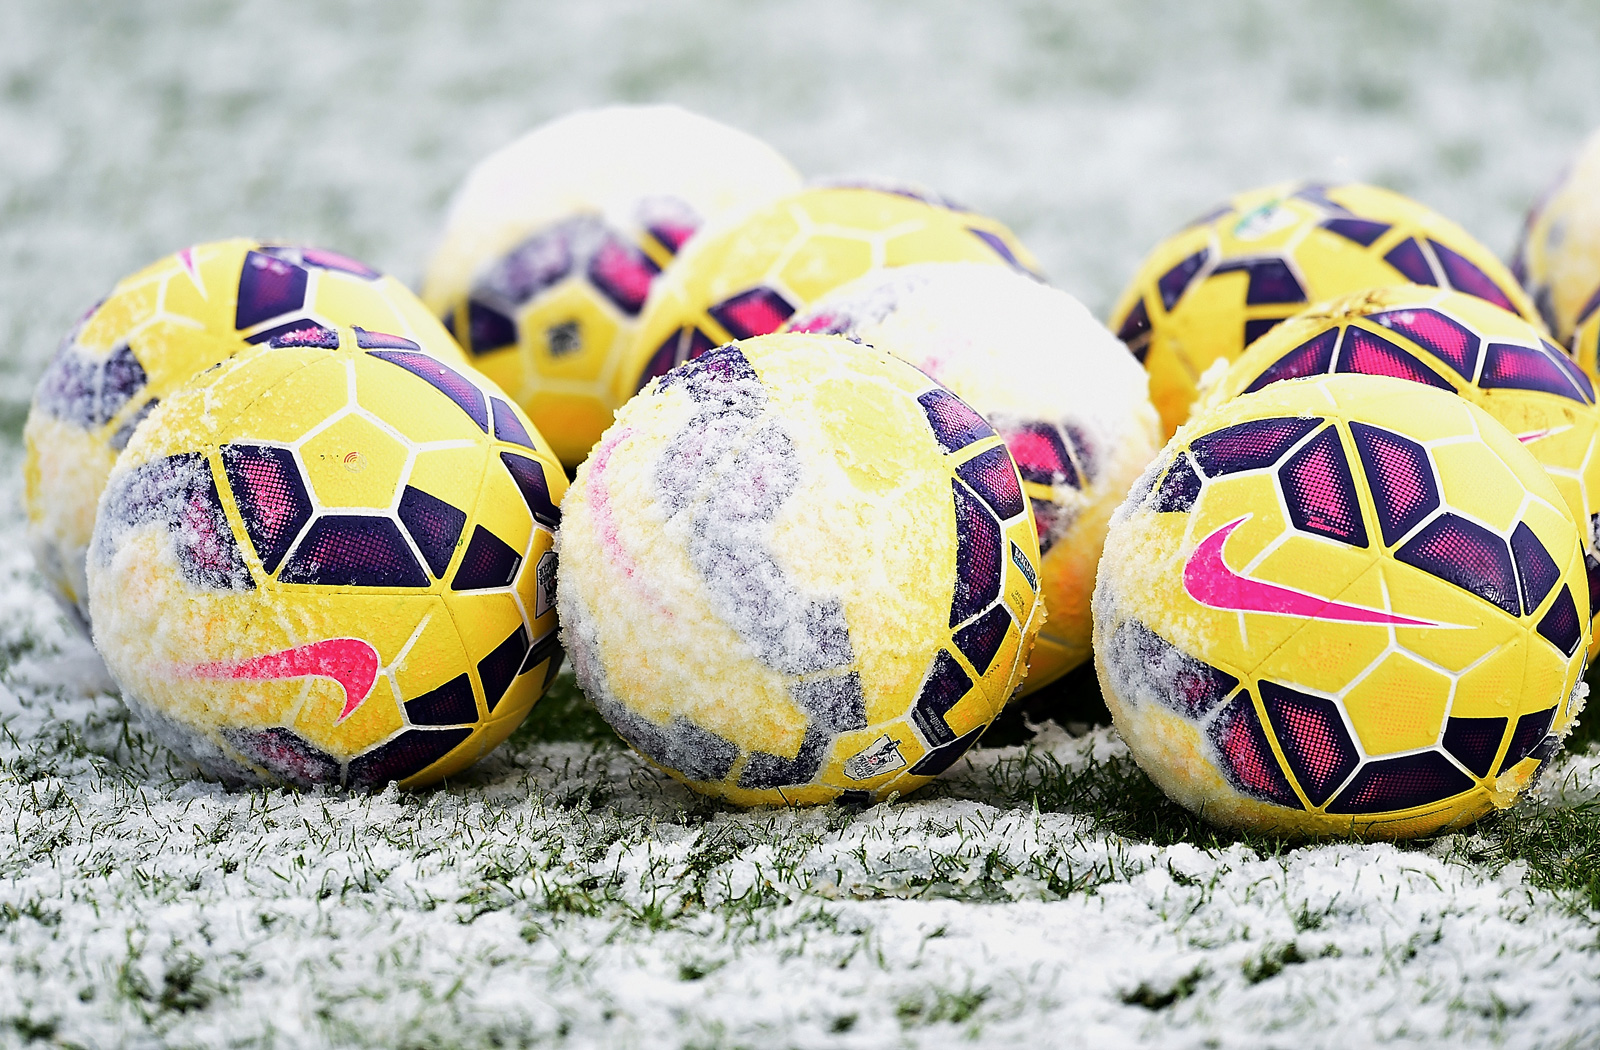 Image result for soccer ball in snow